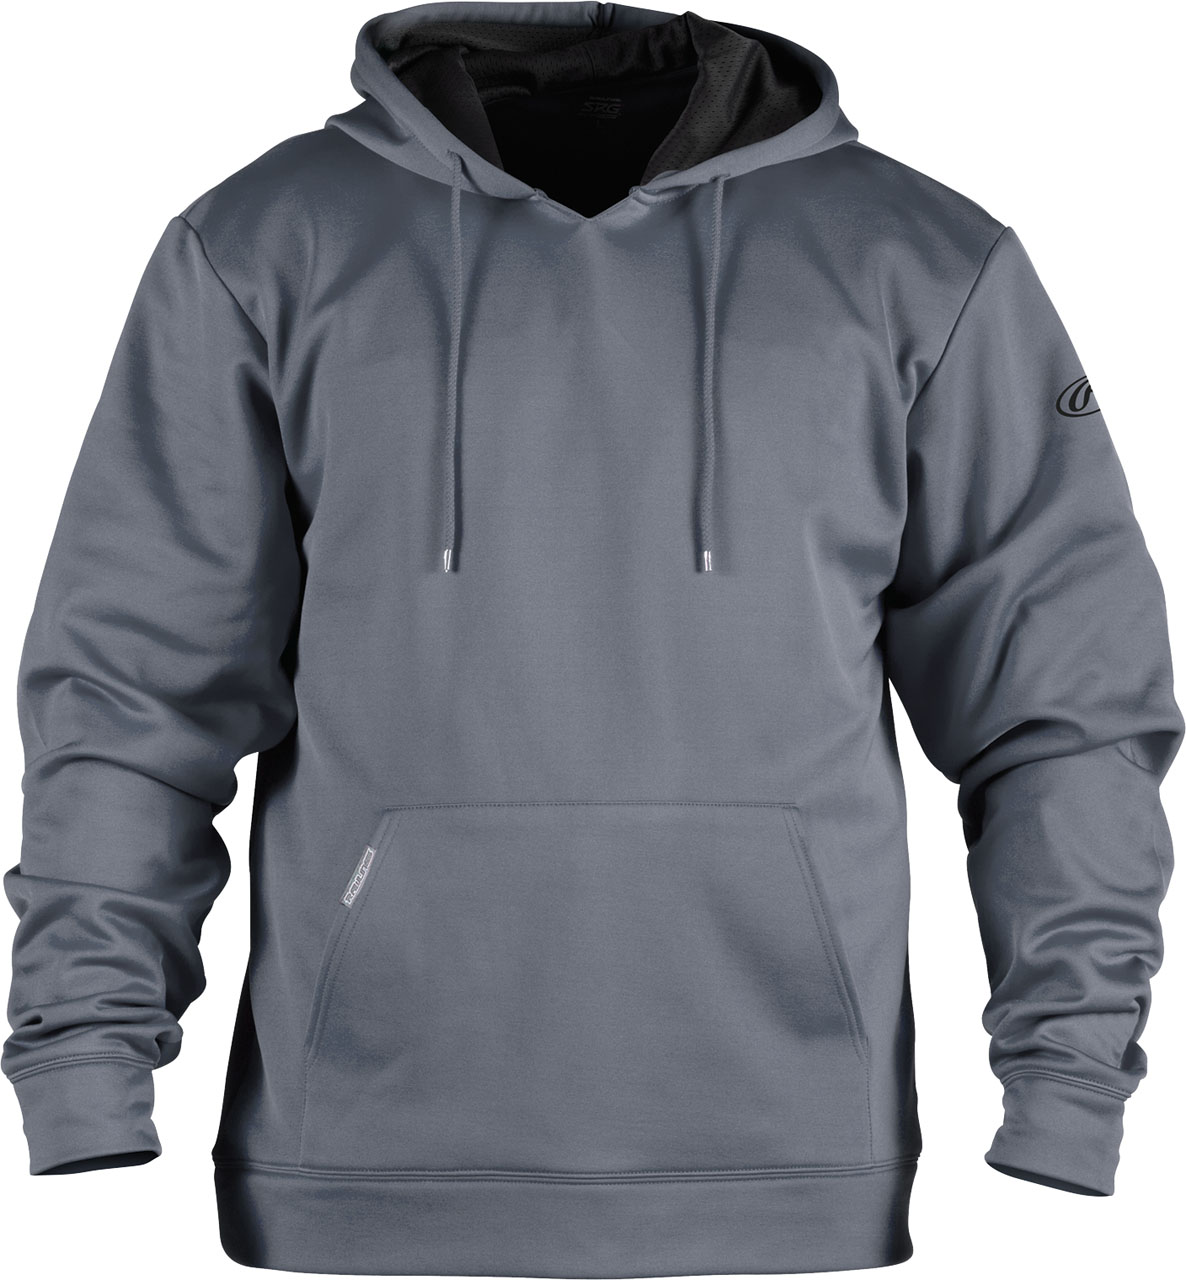 Picture of RAWLINGS Brushed Performance Fleece Hoodie